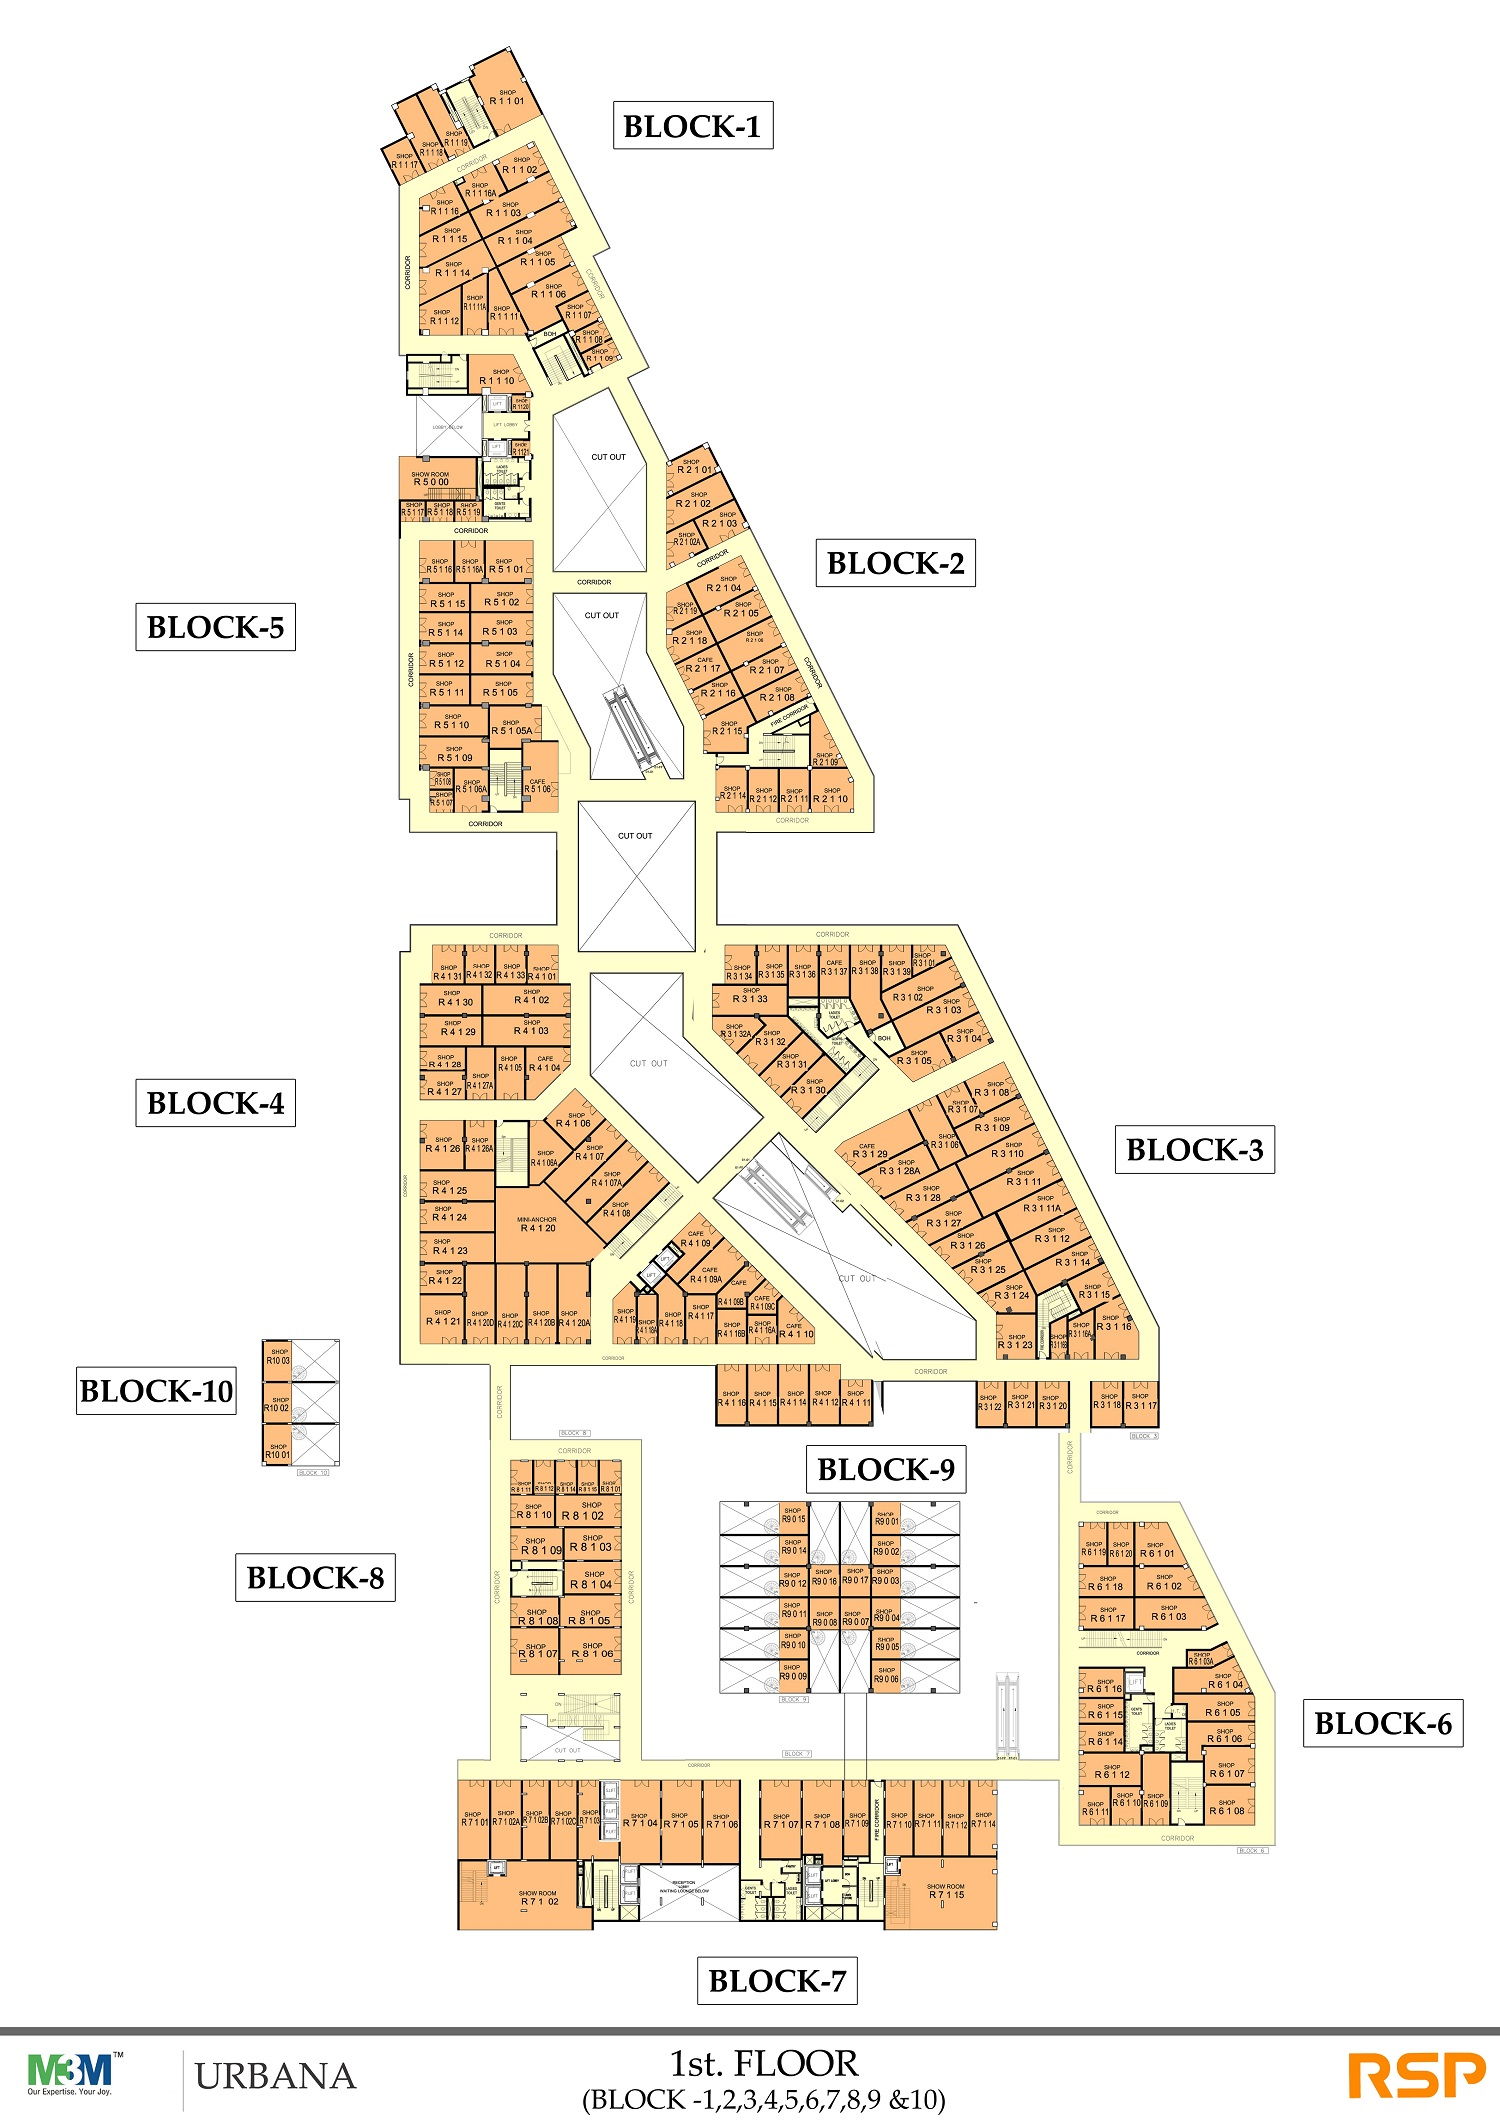 M3M Urbana First Floor Plan